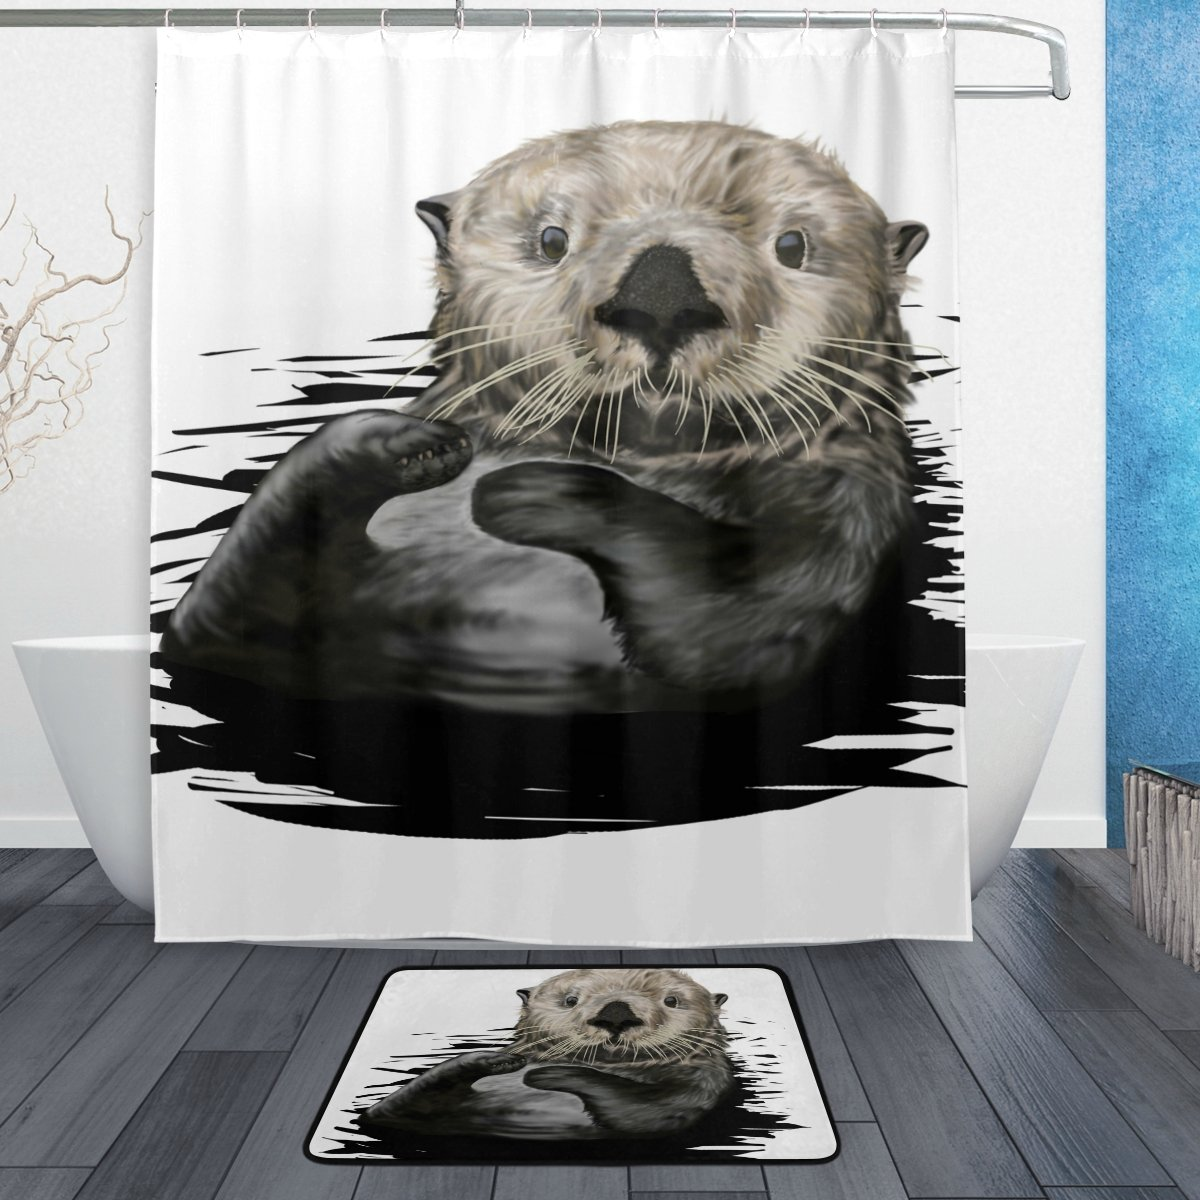 ALAZA Set of 2 Cute Otter Animal 60 X 72 Inches Shower Curtain and Mat Set, Black and White Waterproof Fabric Bathroom Curtain and Rug Set with Hooks